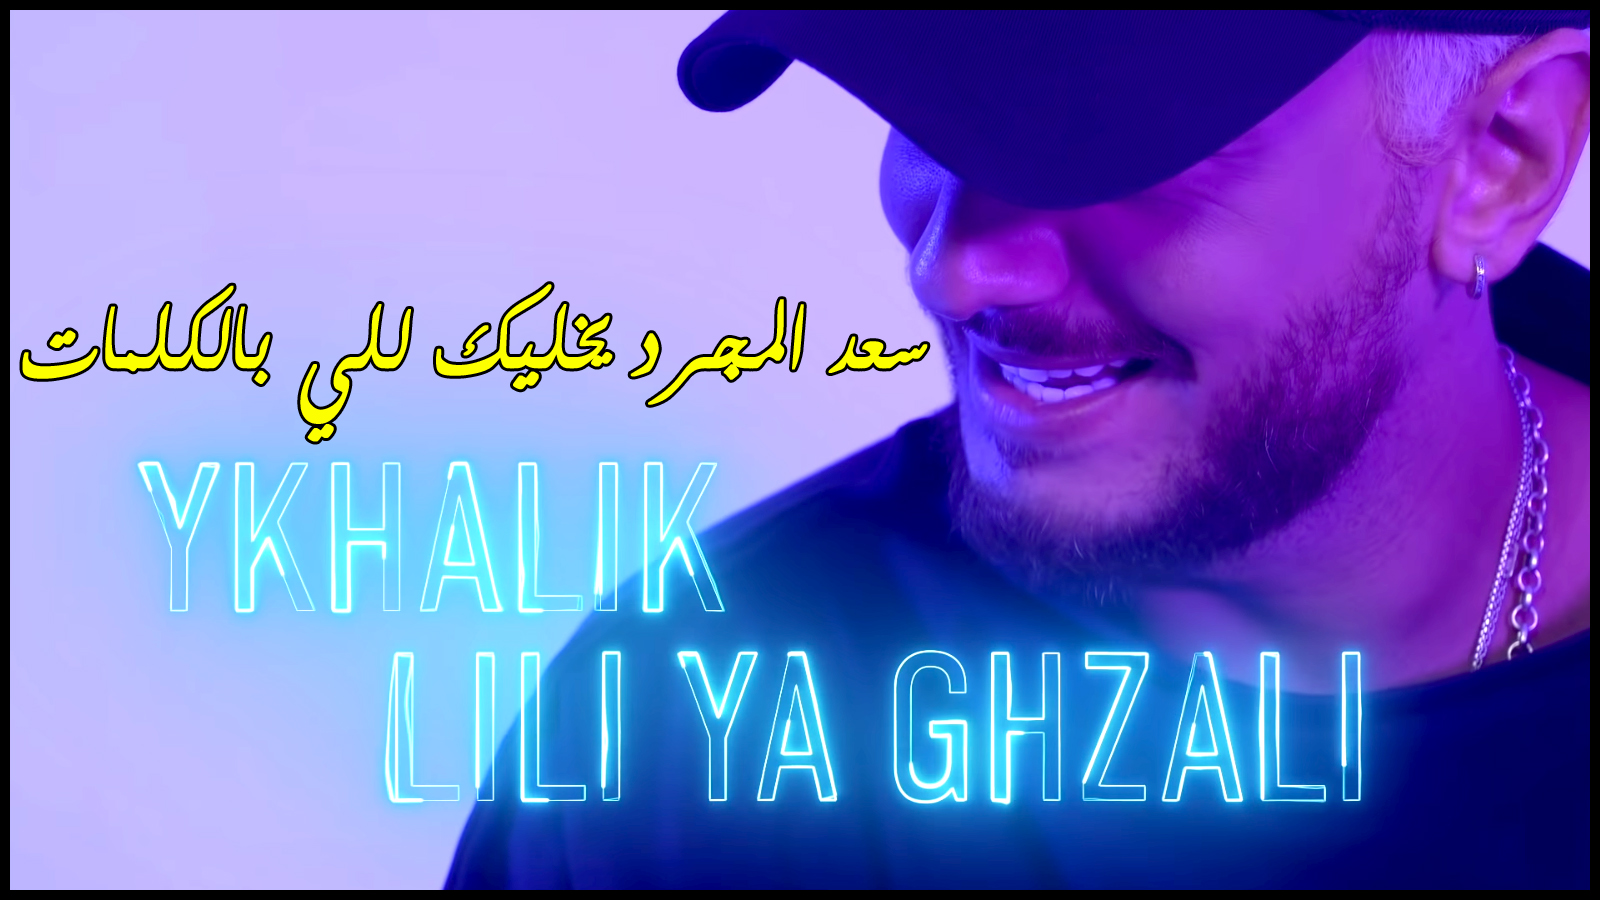 Saad Lamjarred - YKHALIK LILI (Lyrics Music Video) سعد لمجرد - يخليك للي